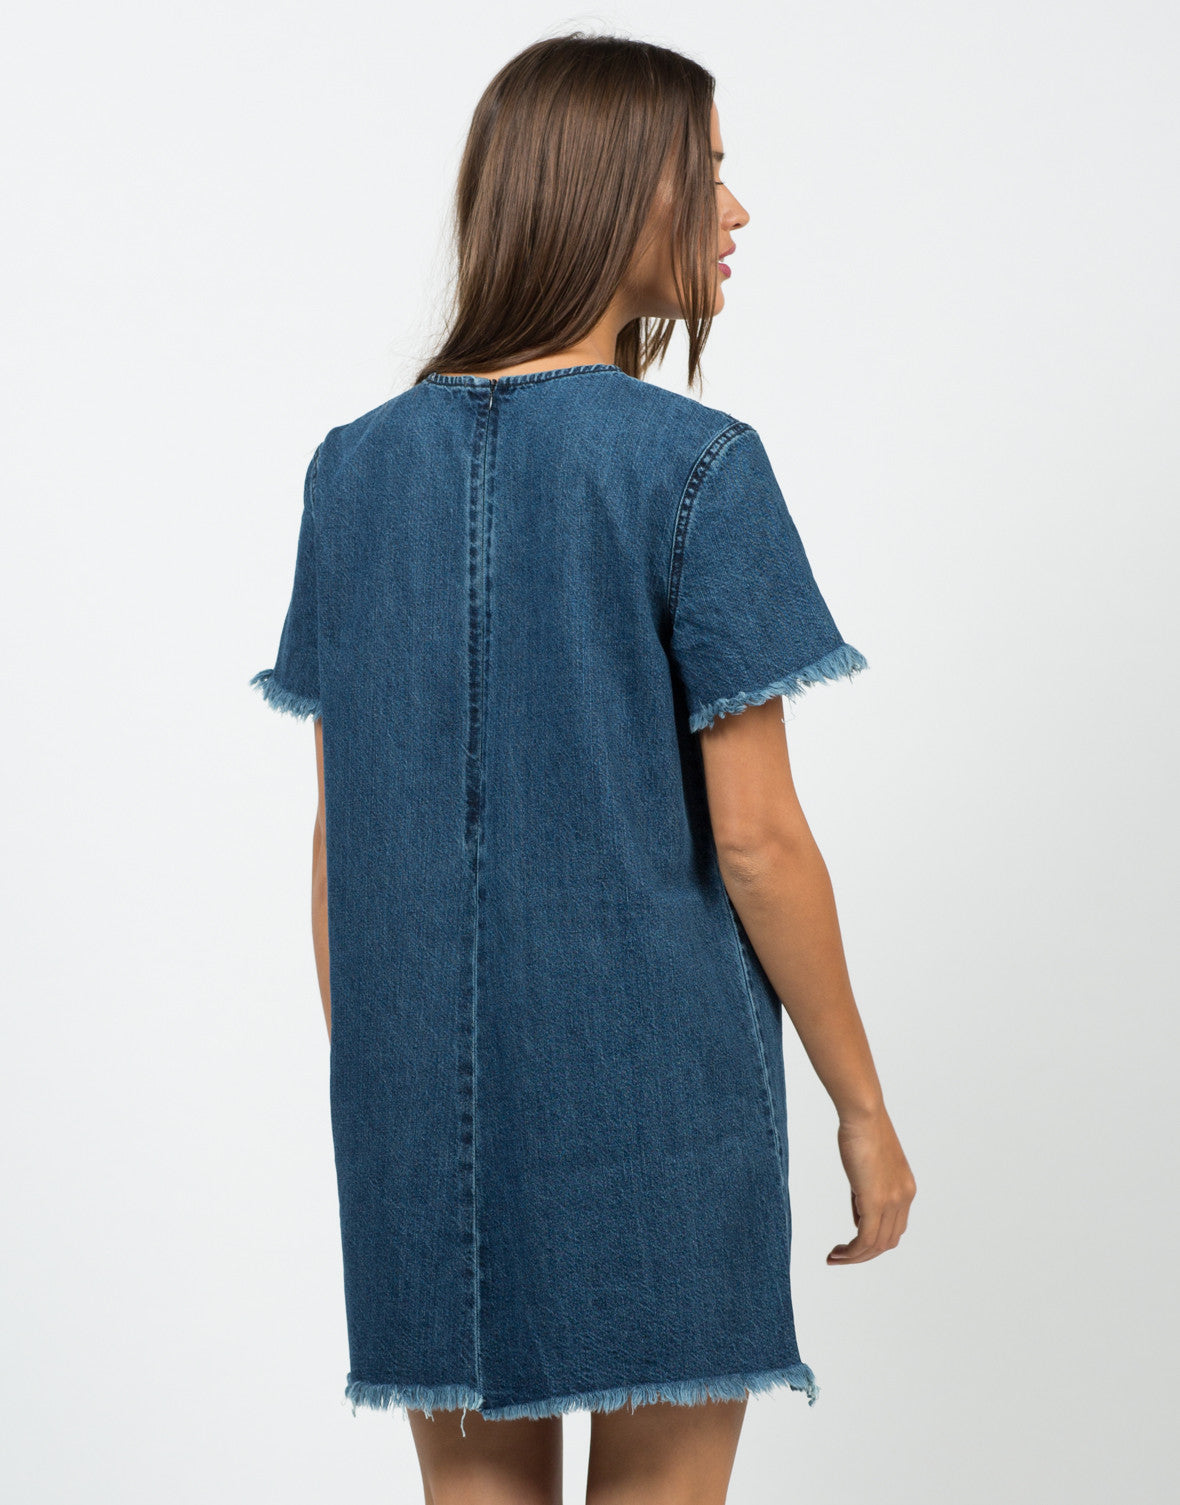 Back View of Frayed Denim Shirt Dress